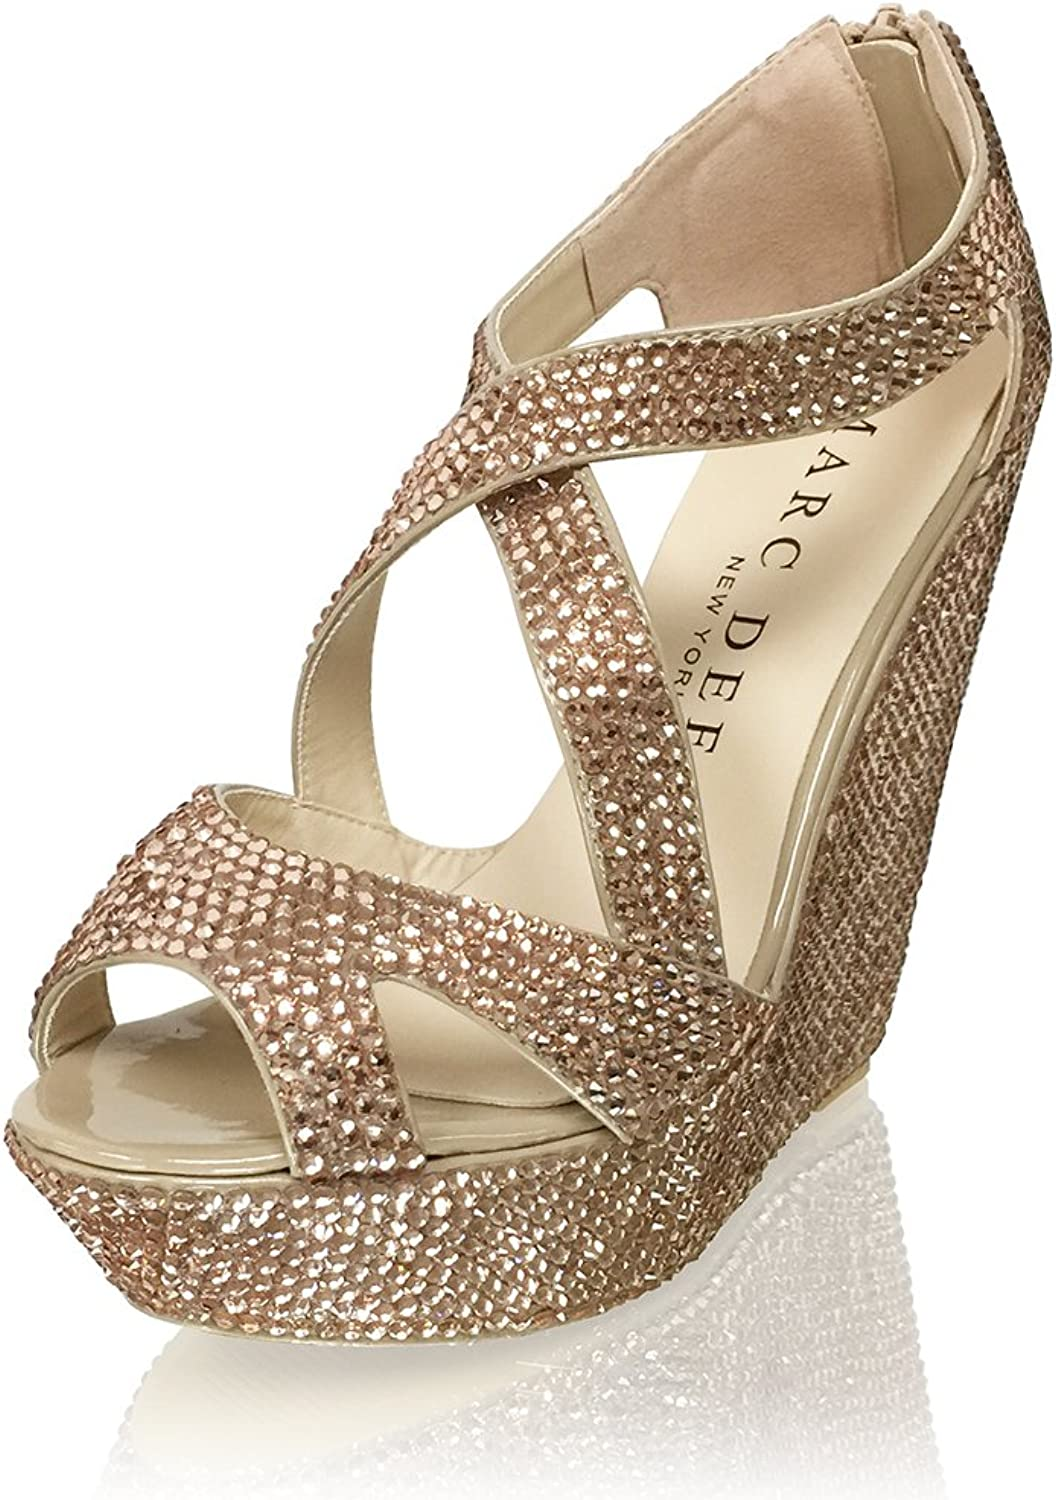 Marc Defang New York Women's Handmade Crystal Bridal Wedding Strappy Platform Wedges